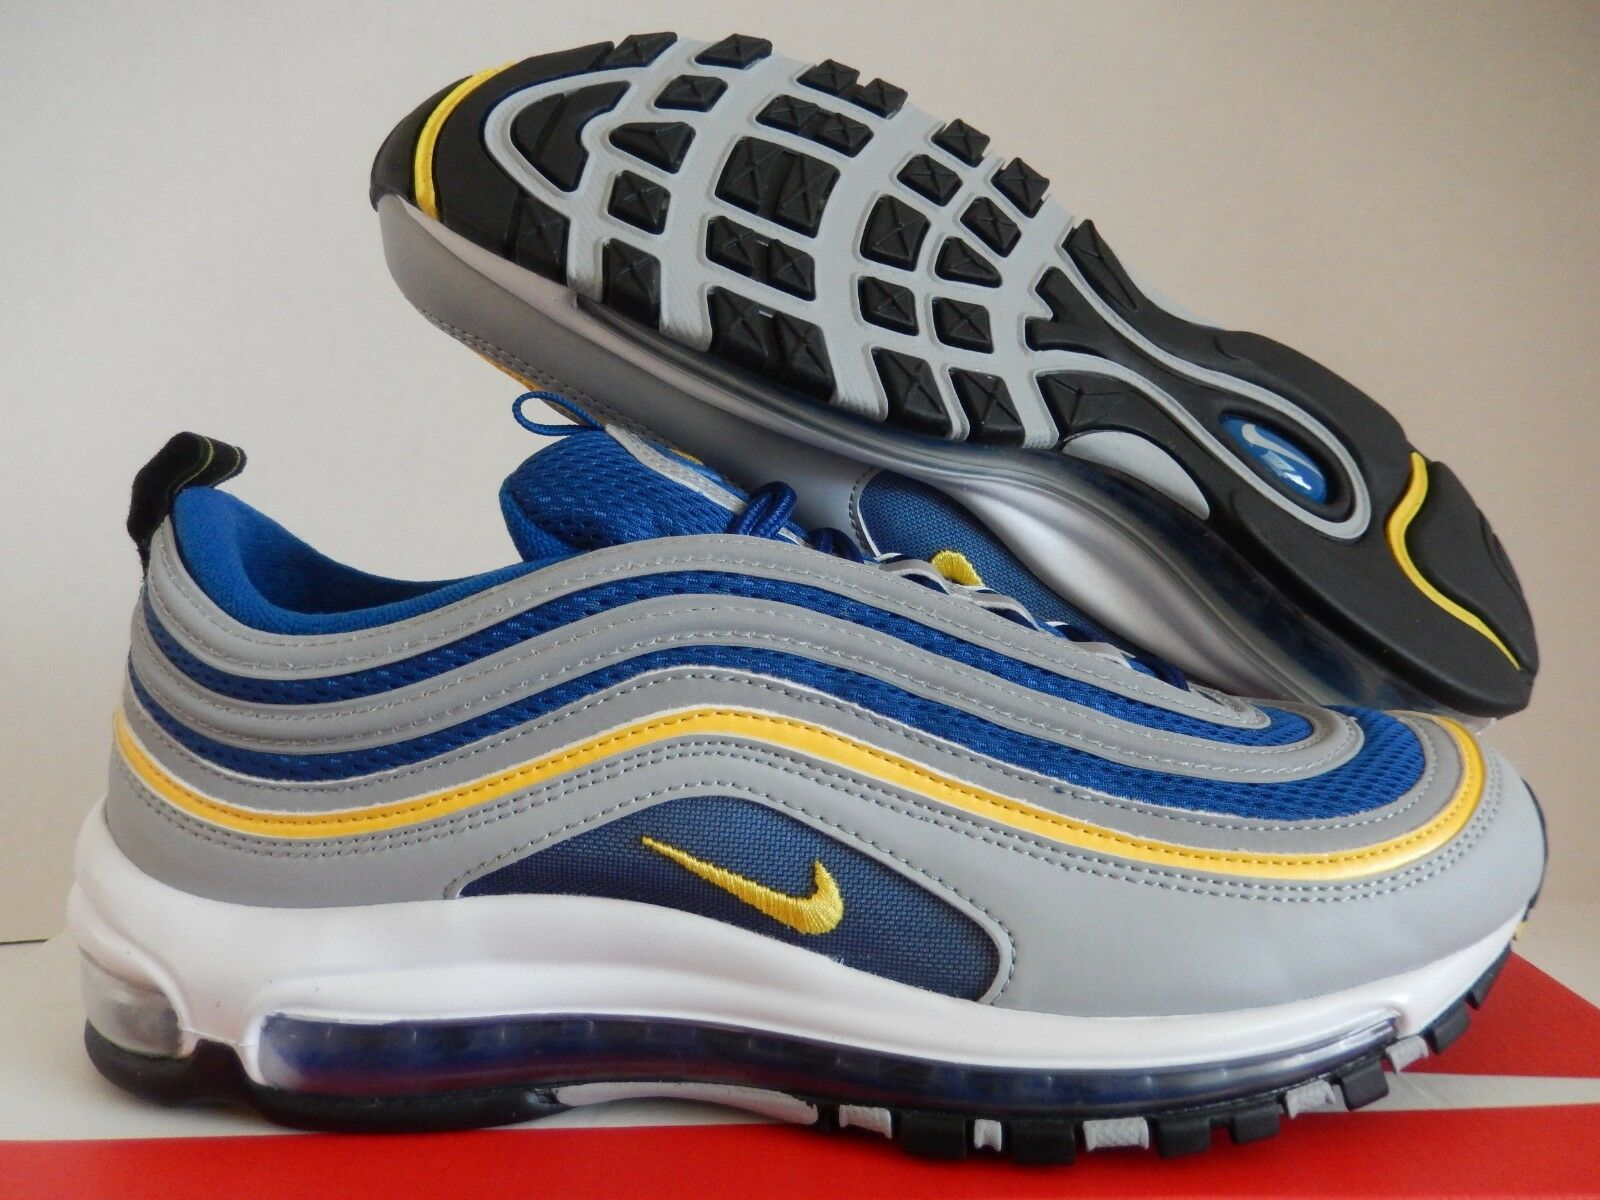 NIKE AIR MAX 97 WOLF GREY-TOUR YELLOW-GYM BLUE Price reduction New shoes for men and women, limited time discount